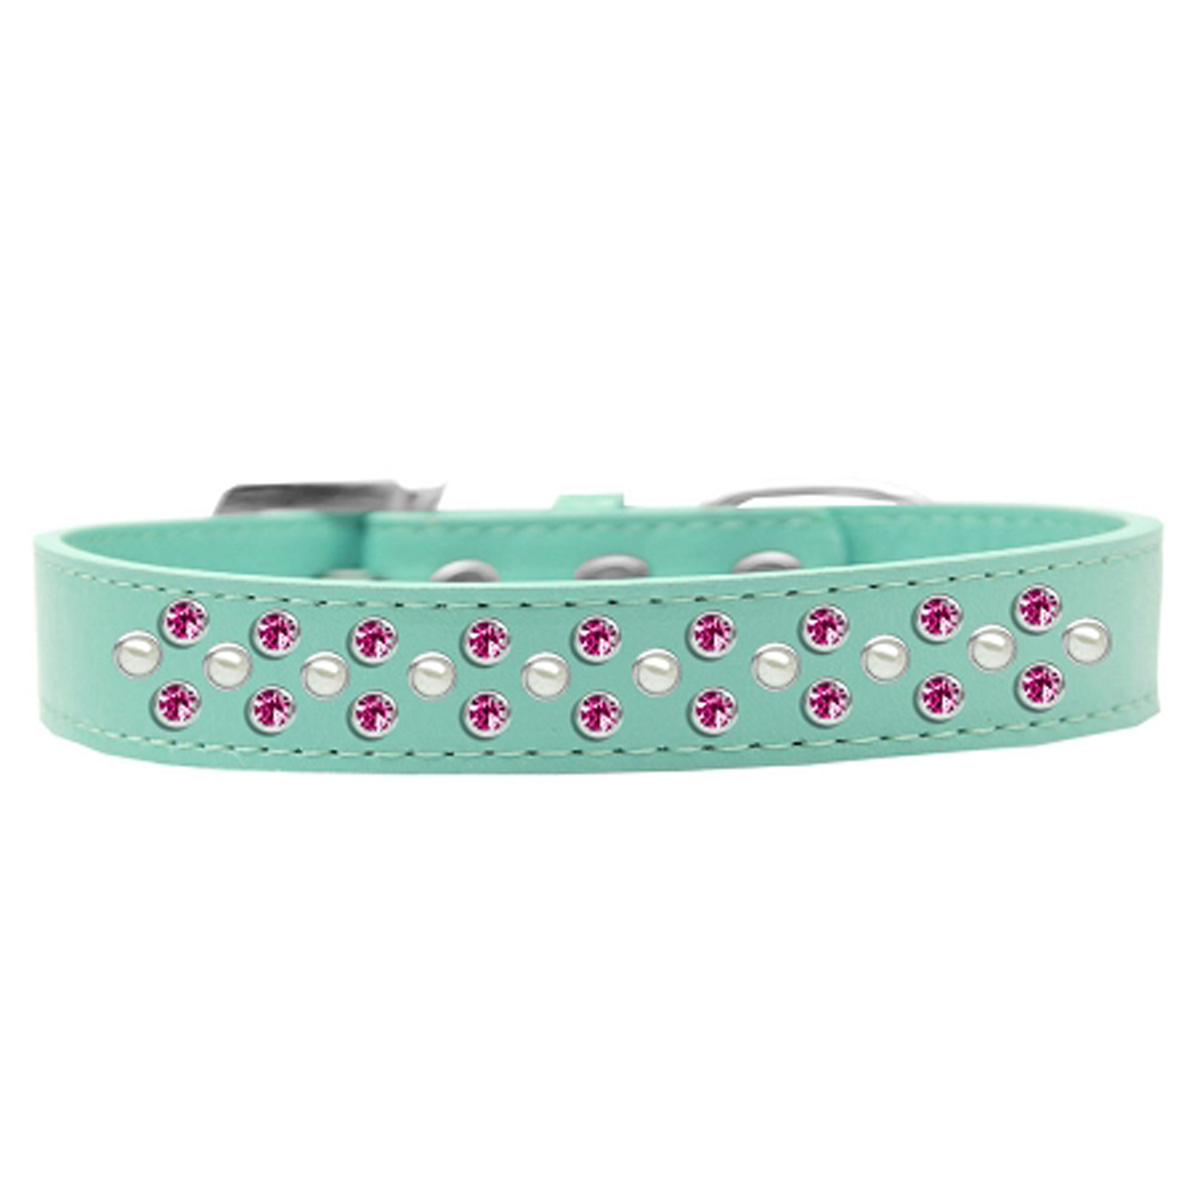 Sprinkles Pearl and Bright Pink Crystals Dog Collar - Aqua